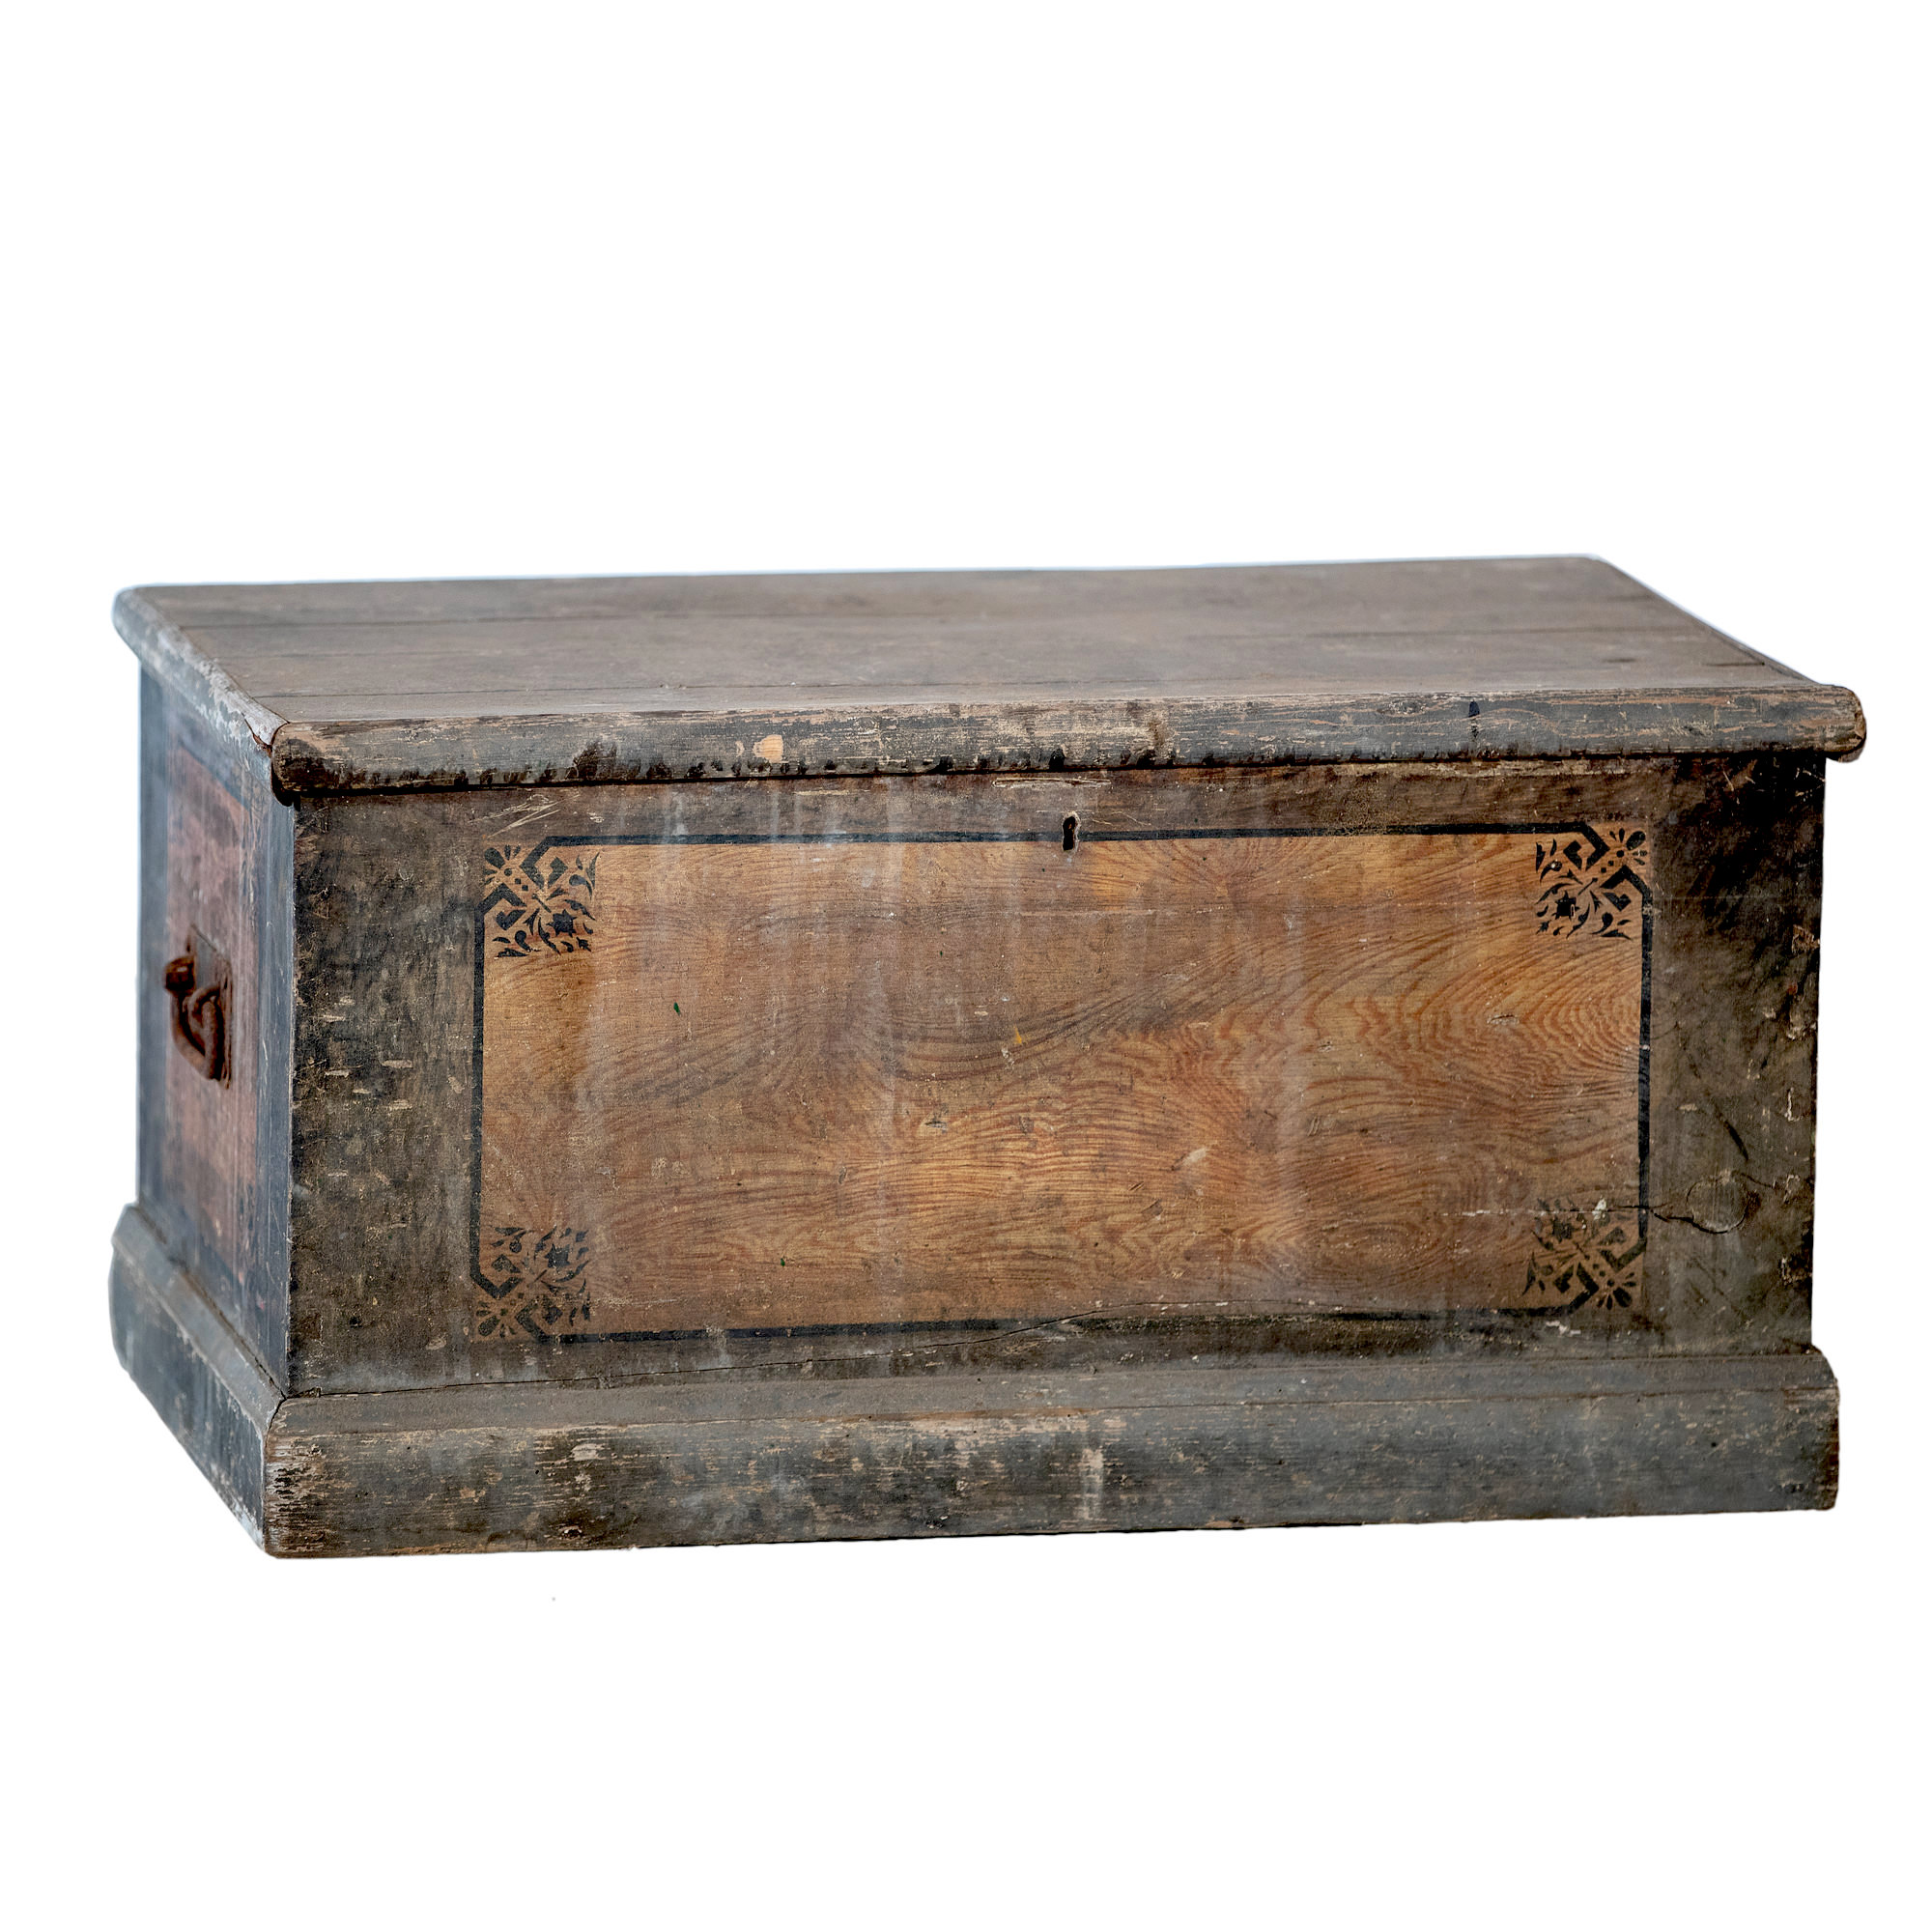 'Continental Painted Pine Blanket Box 19th Century'